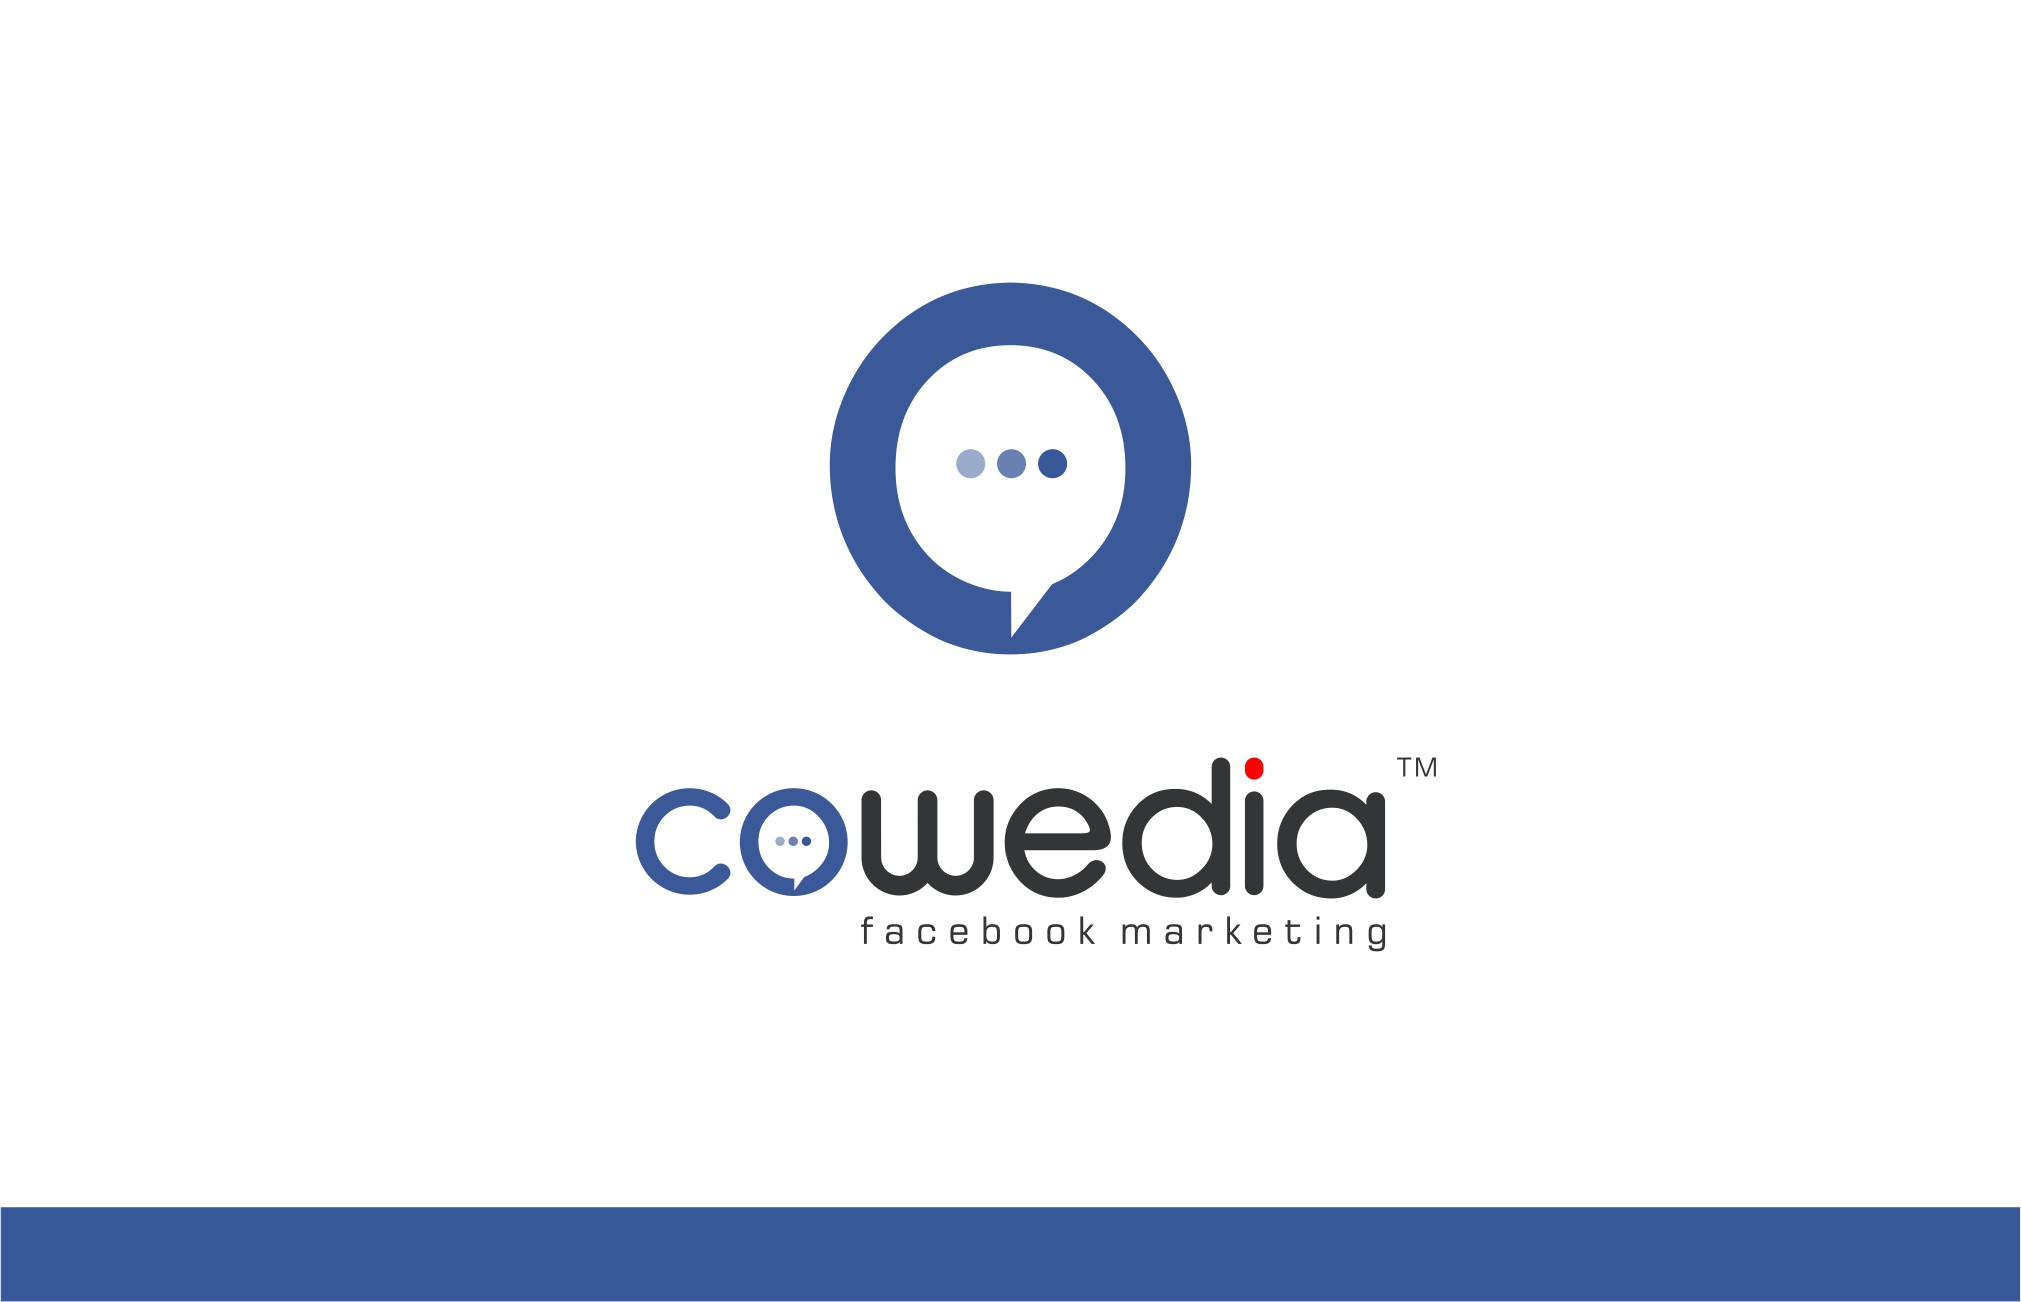 New logo wanted for Cowedia